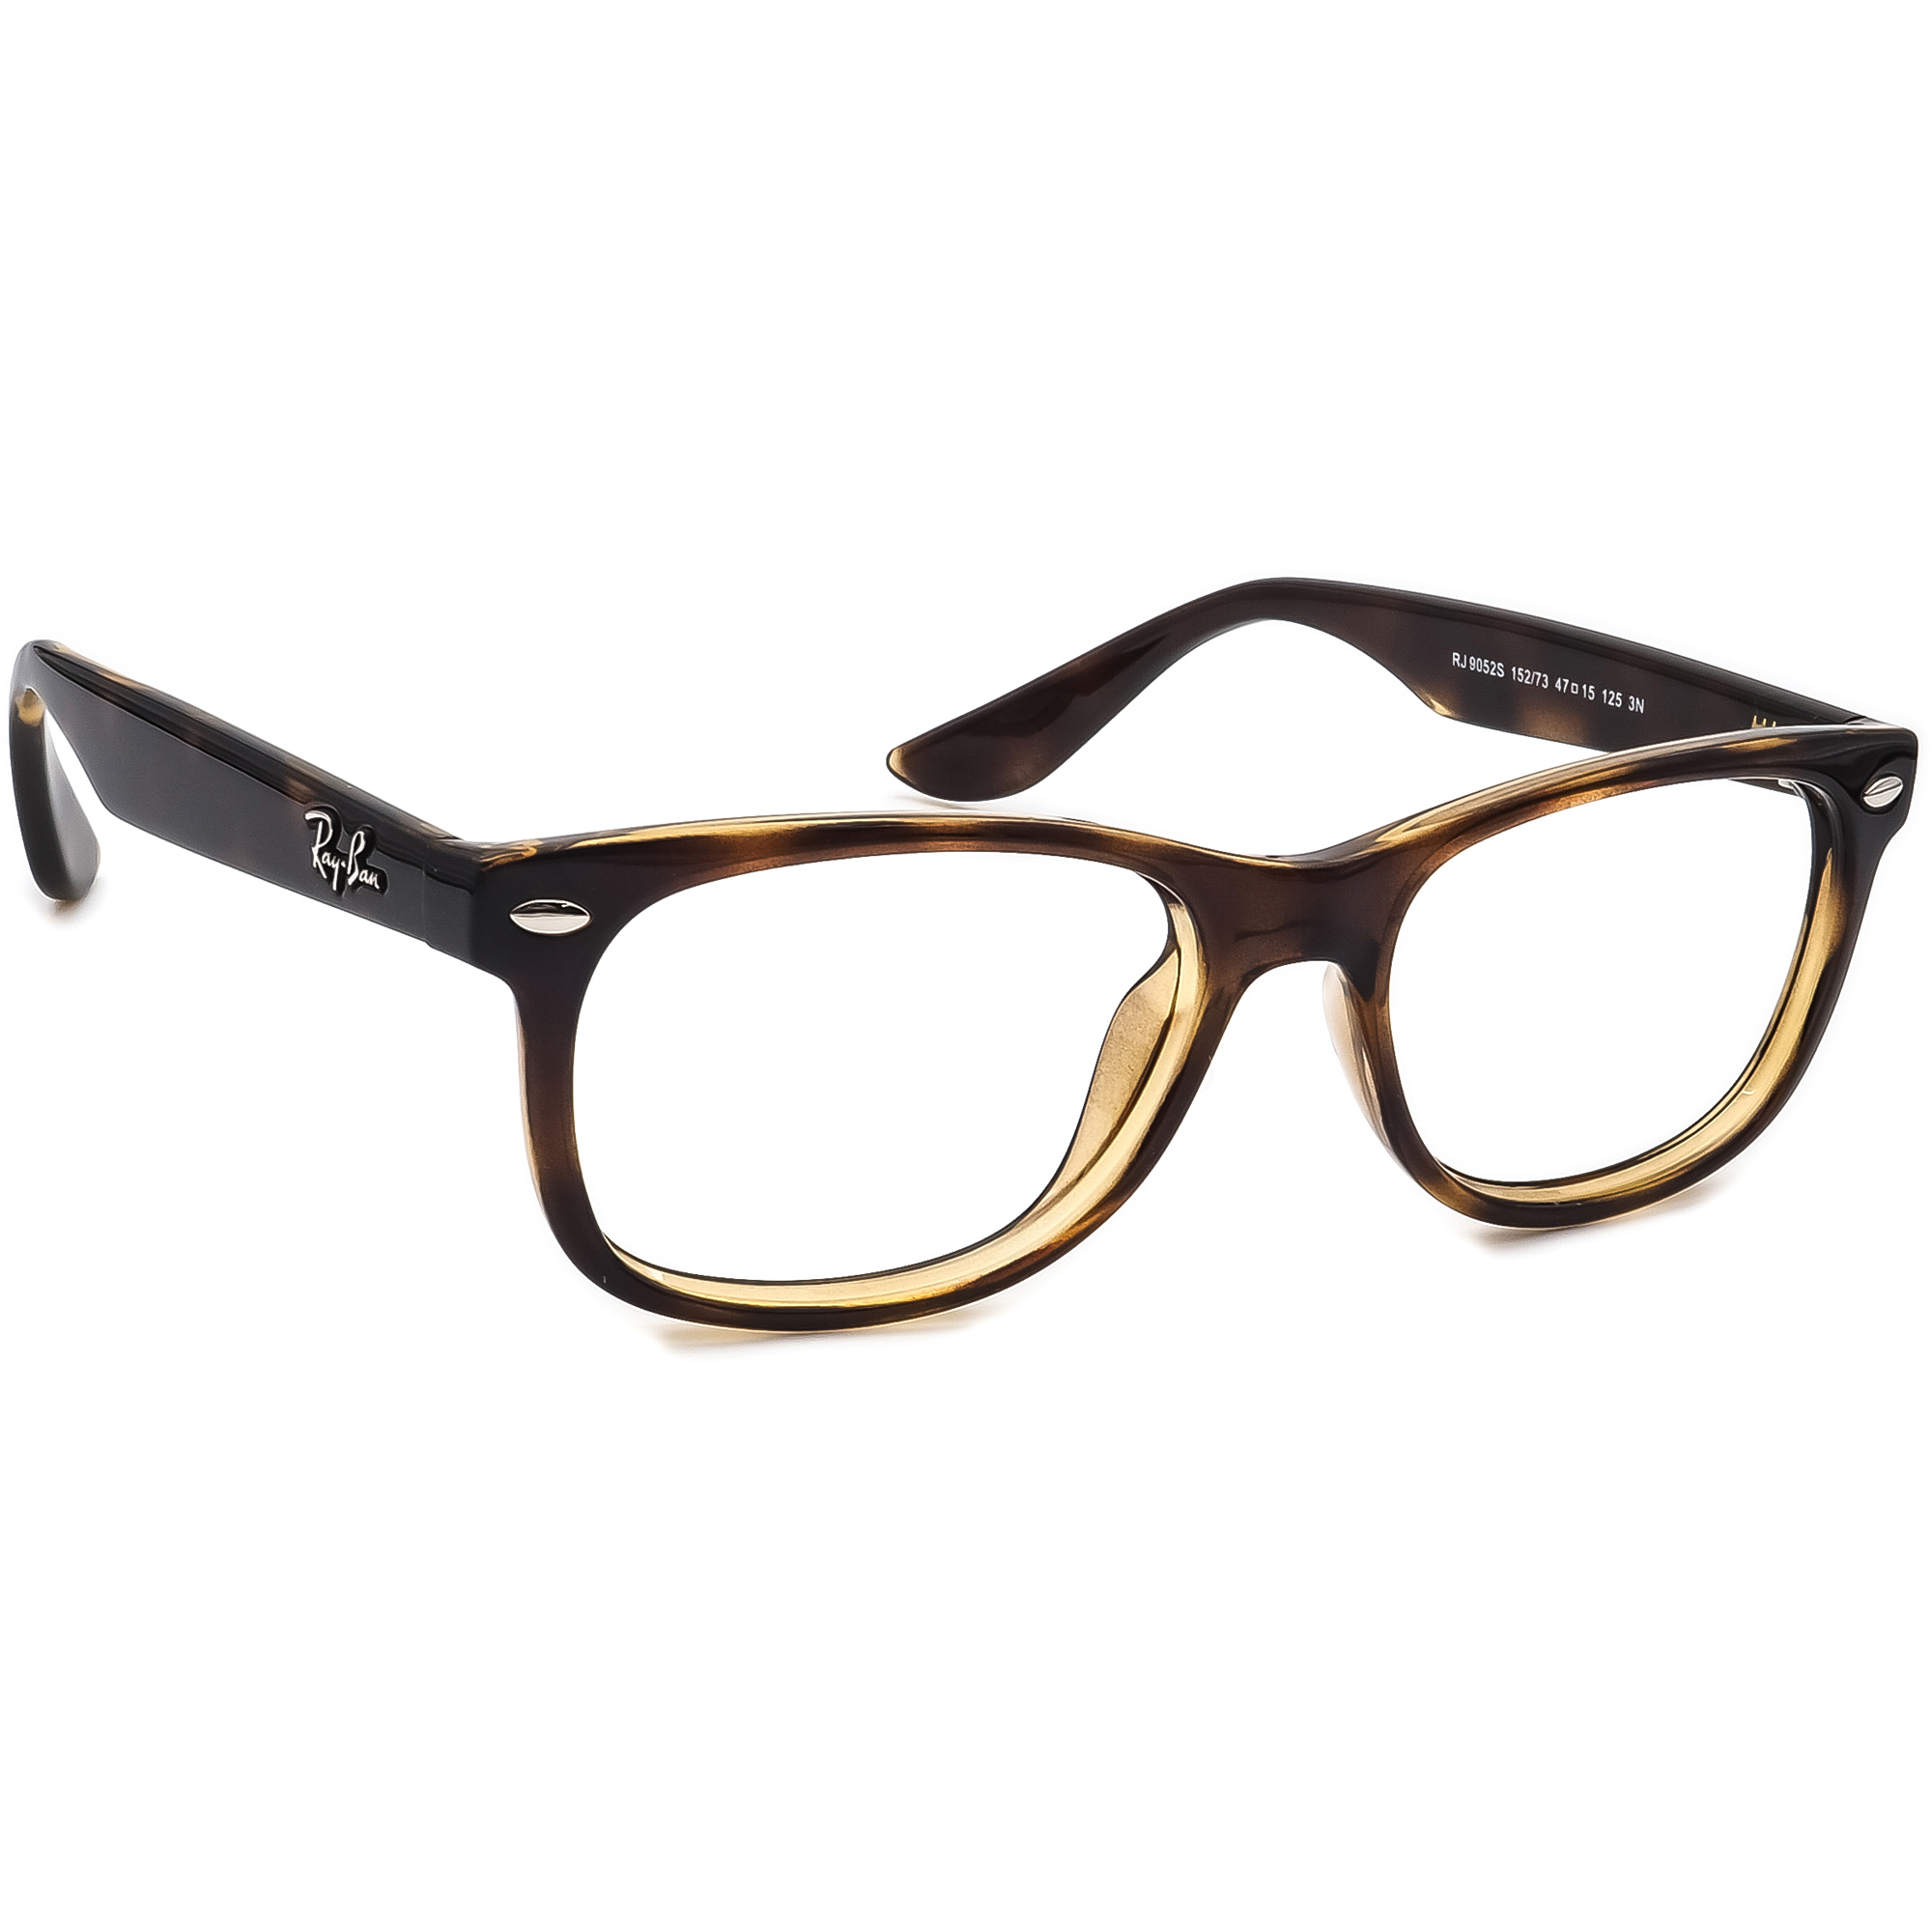 Ray Ban RJ 9052S 152/73 Sunglasses Frame Only